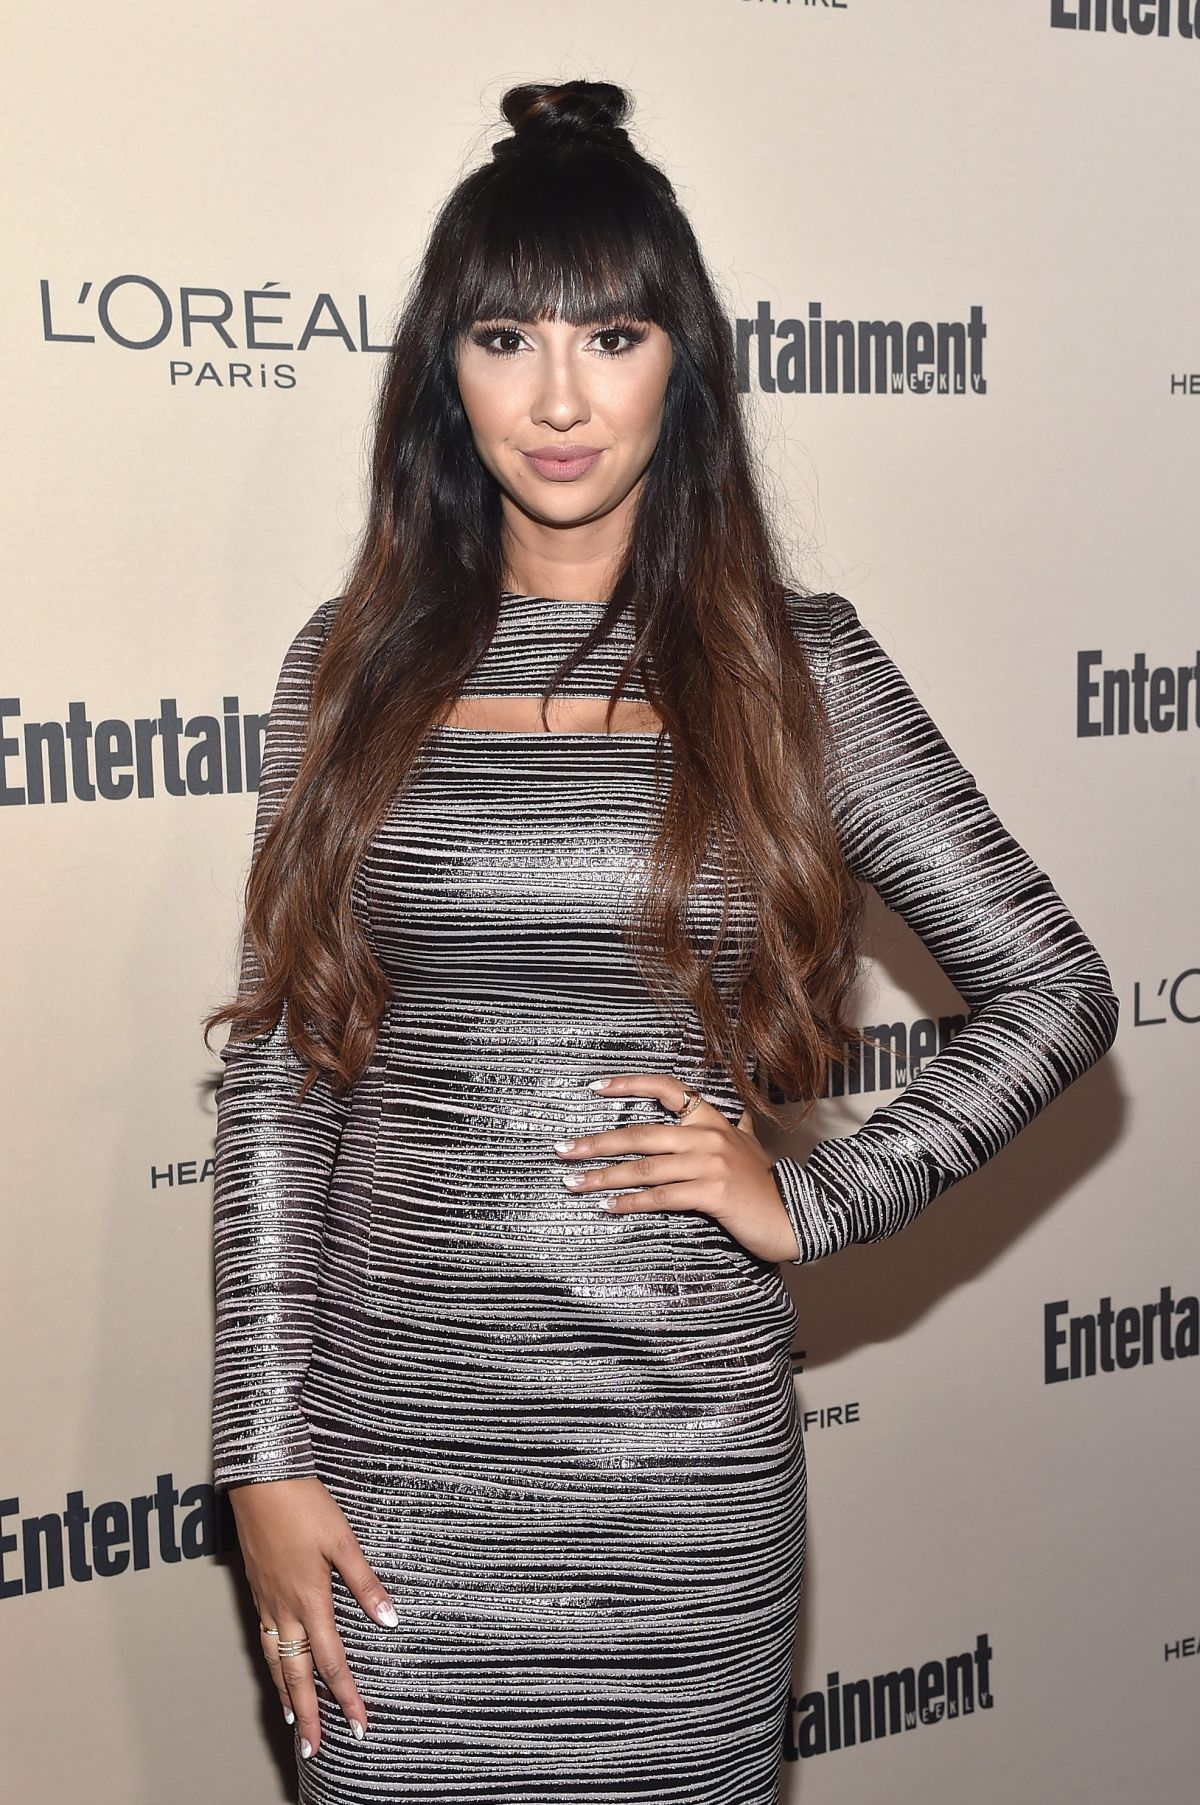 JACKIE CRUZ at 2015 Entertainment Weekly Pre-emmy Party in West Hollywood 09/18/2015 - HawtCelebs